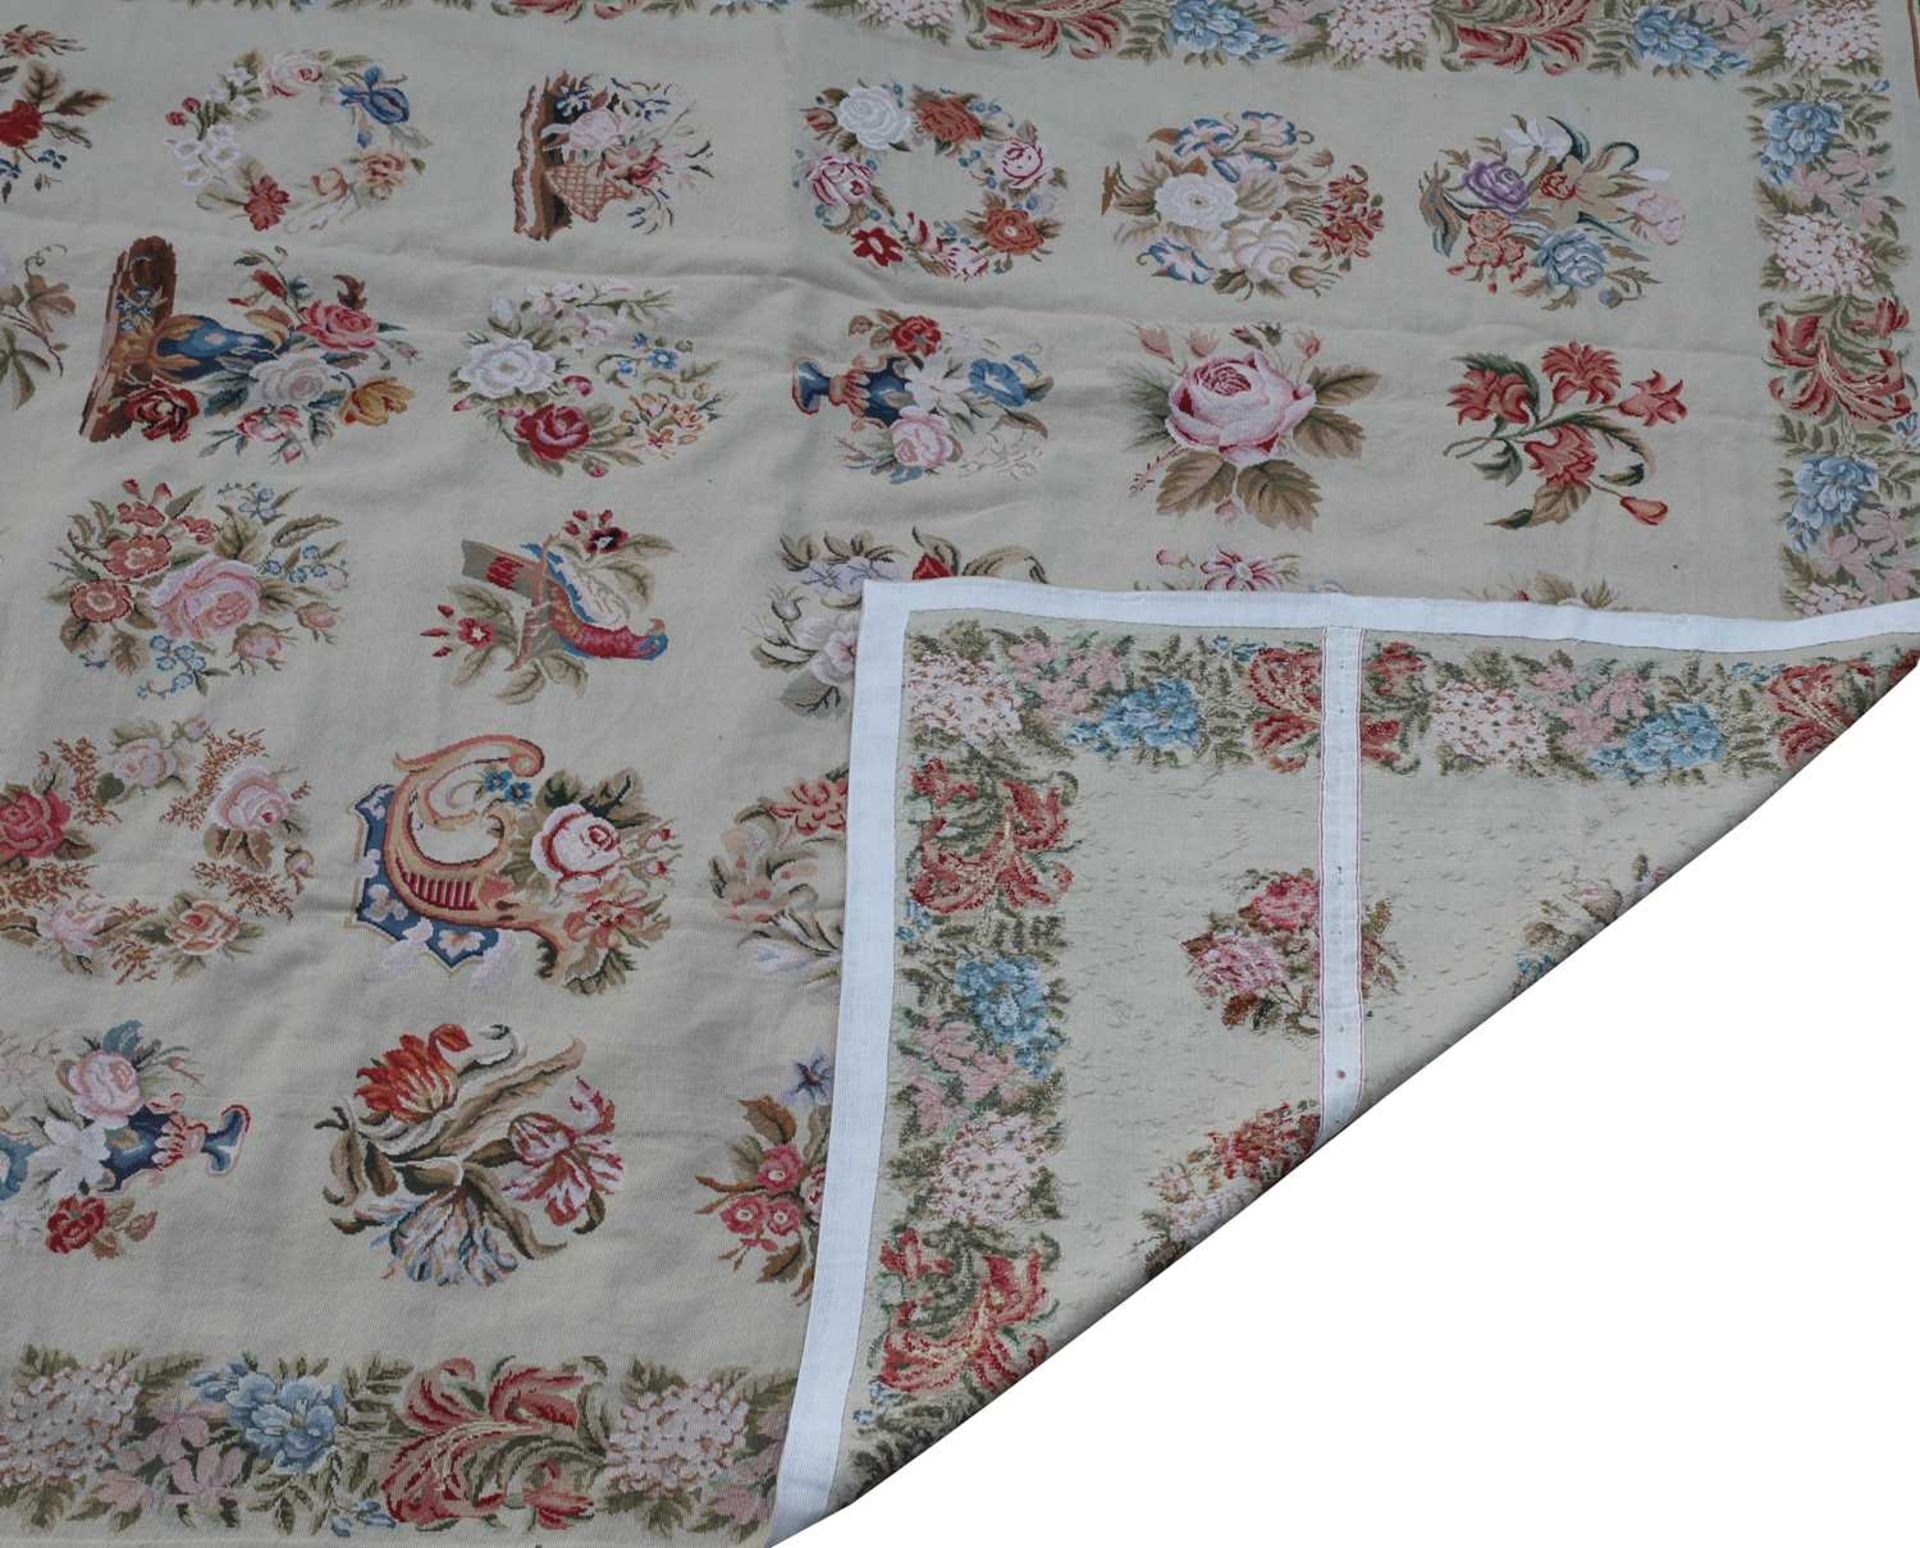 An Aubusson-style finely handwoven needlepoint carpet, - Image 2 of 2